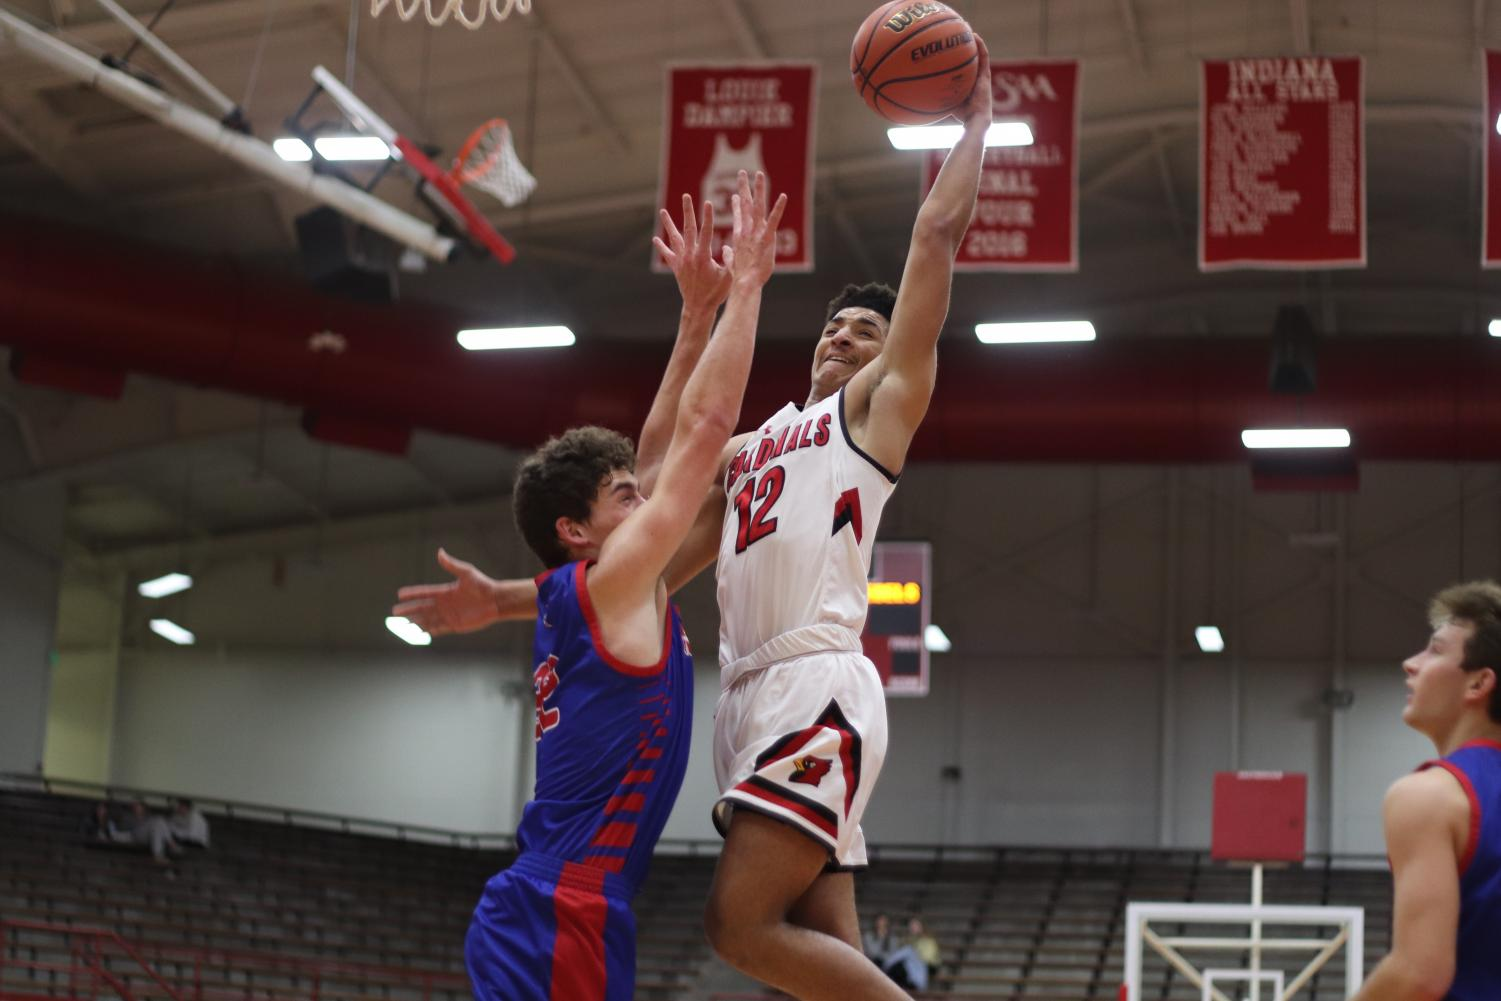 Attempting a layup, senior Brevin Jefferson scored the most points during the game. Jefferson scored a total of 20 points.